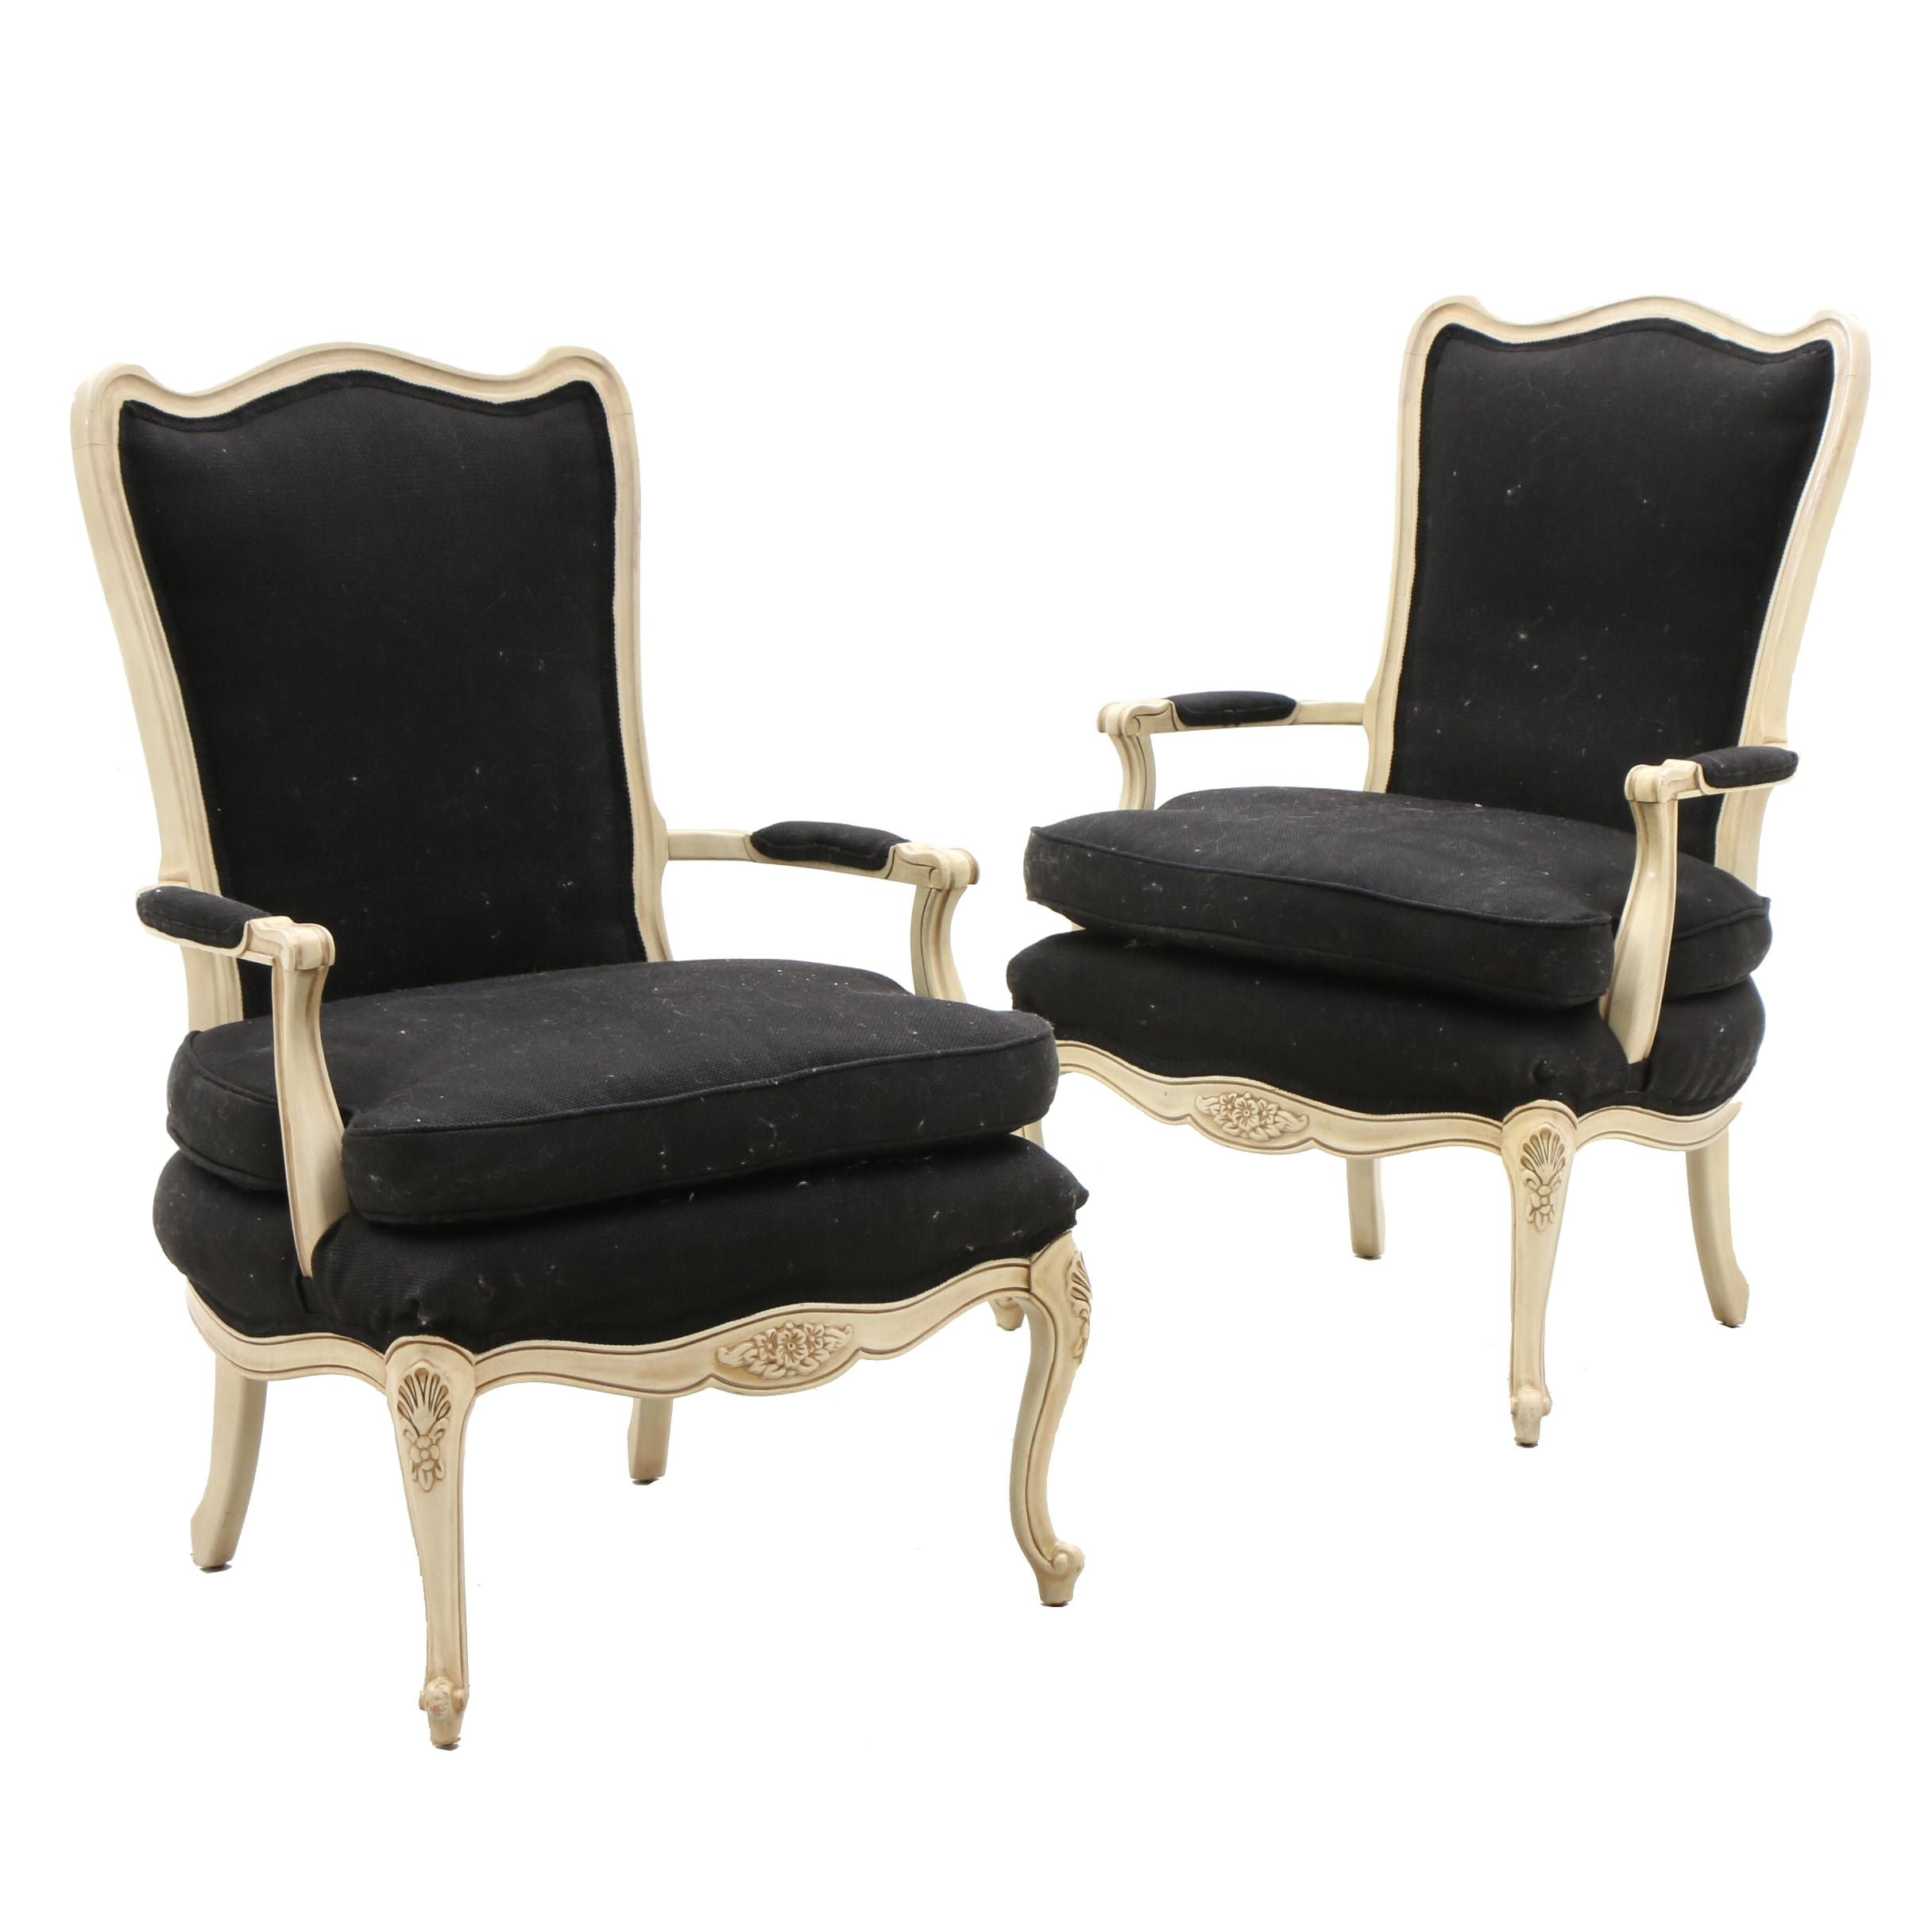 Pair Upholstered Arm Chairs in Black